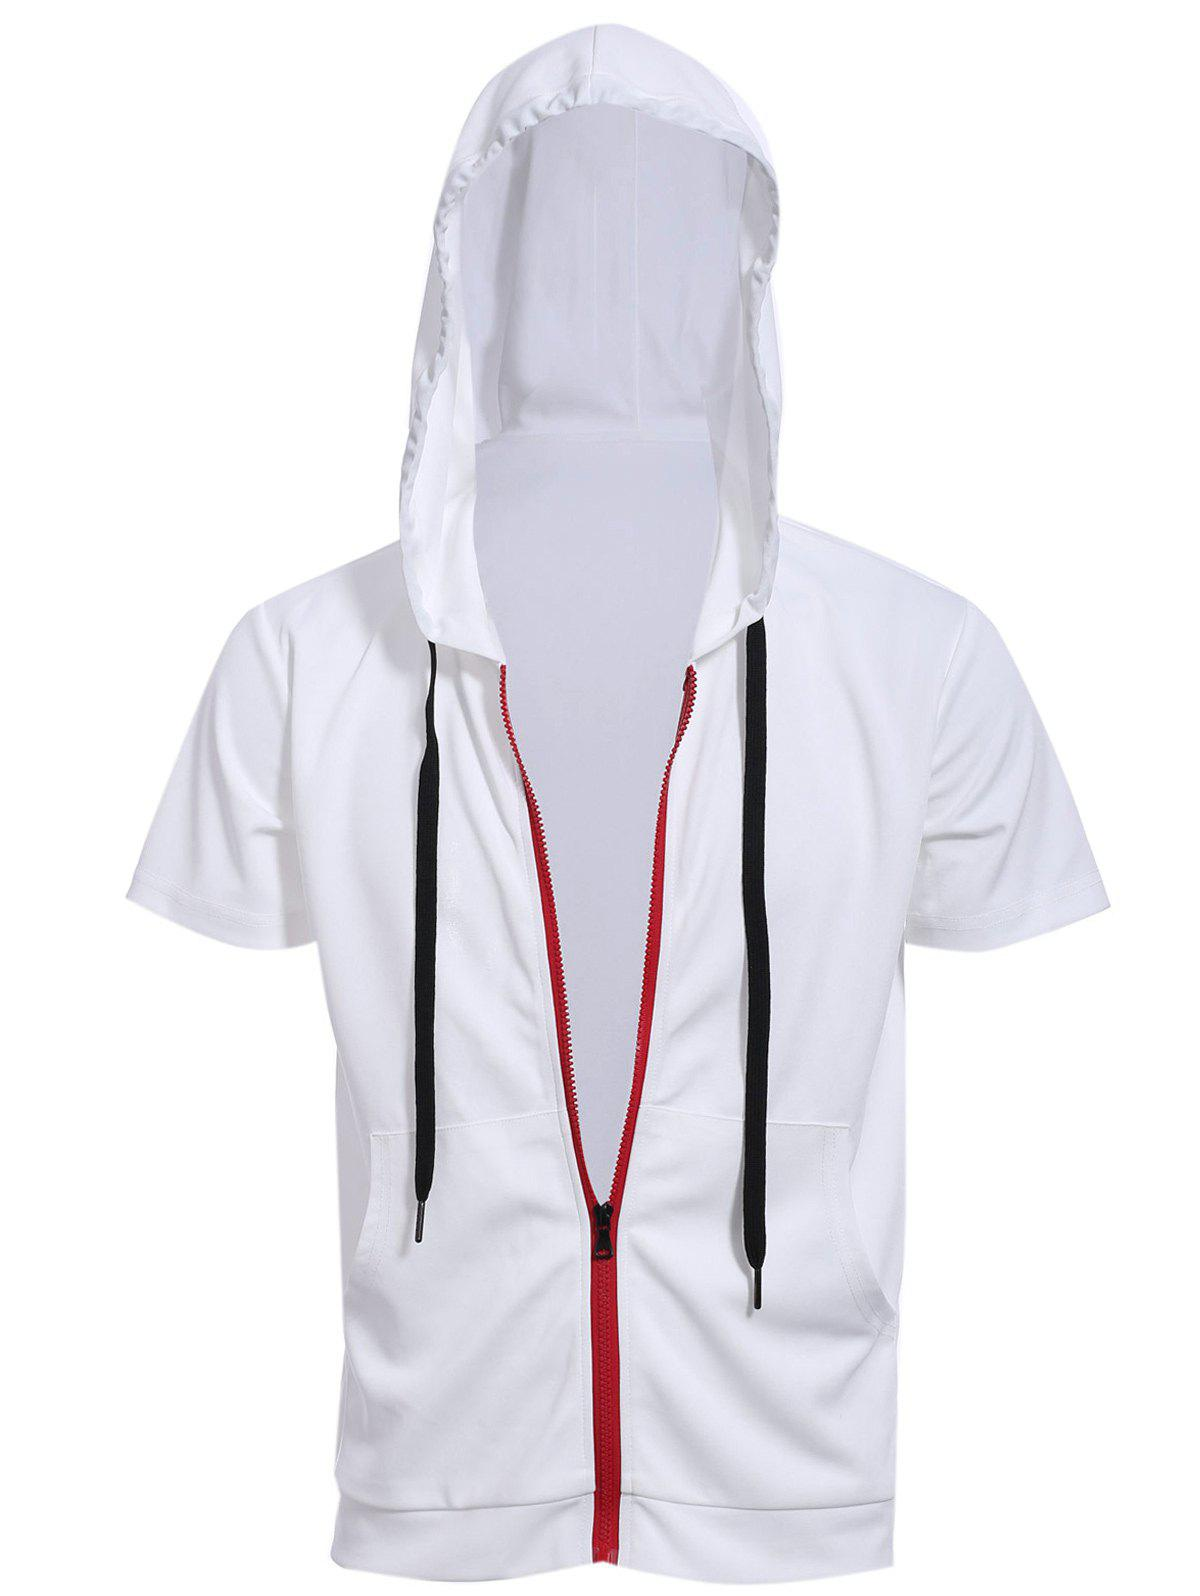 Red Zipper Fly Front Pocket Hooded Short Sleeves Men's White Hoodie - WHITE L